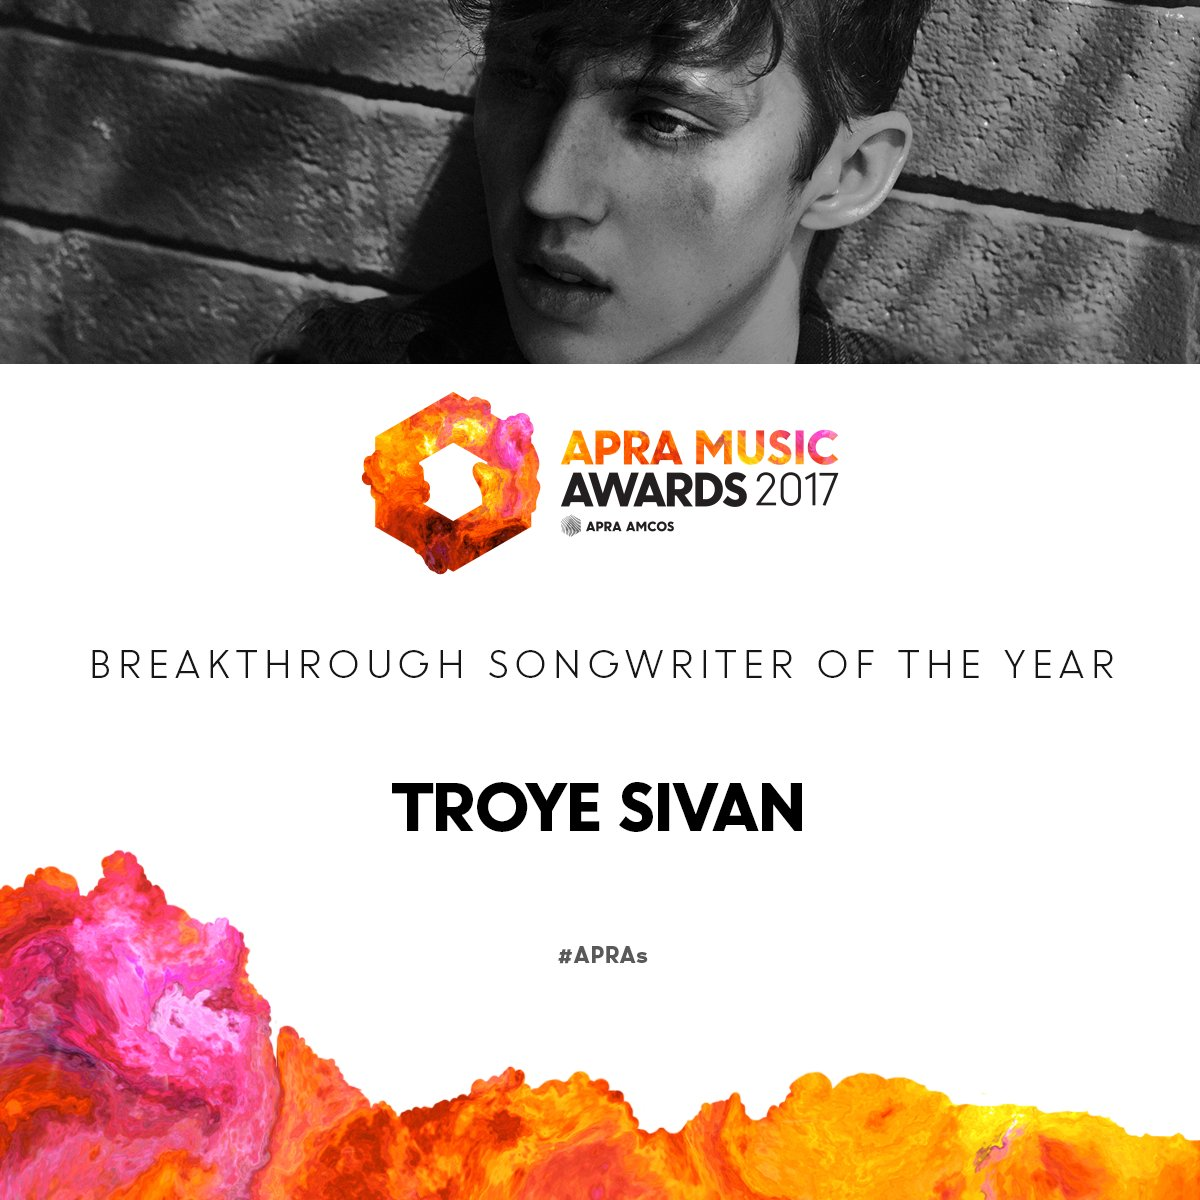 Breakthrough Songwriter of the Year goes to @troyesivan! #APRAs https://t.co/DxPnnzTL4Y